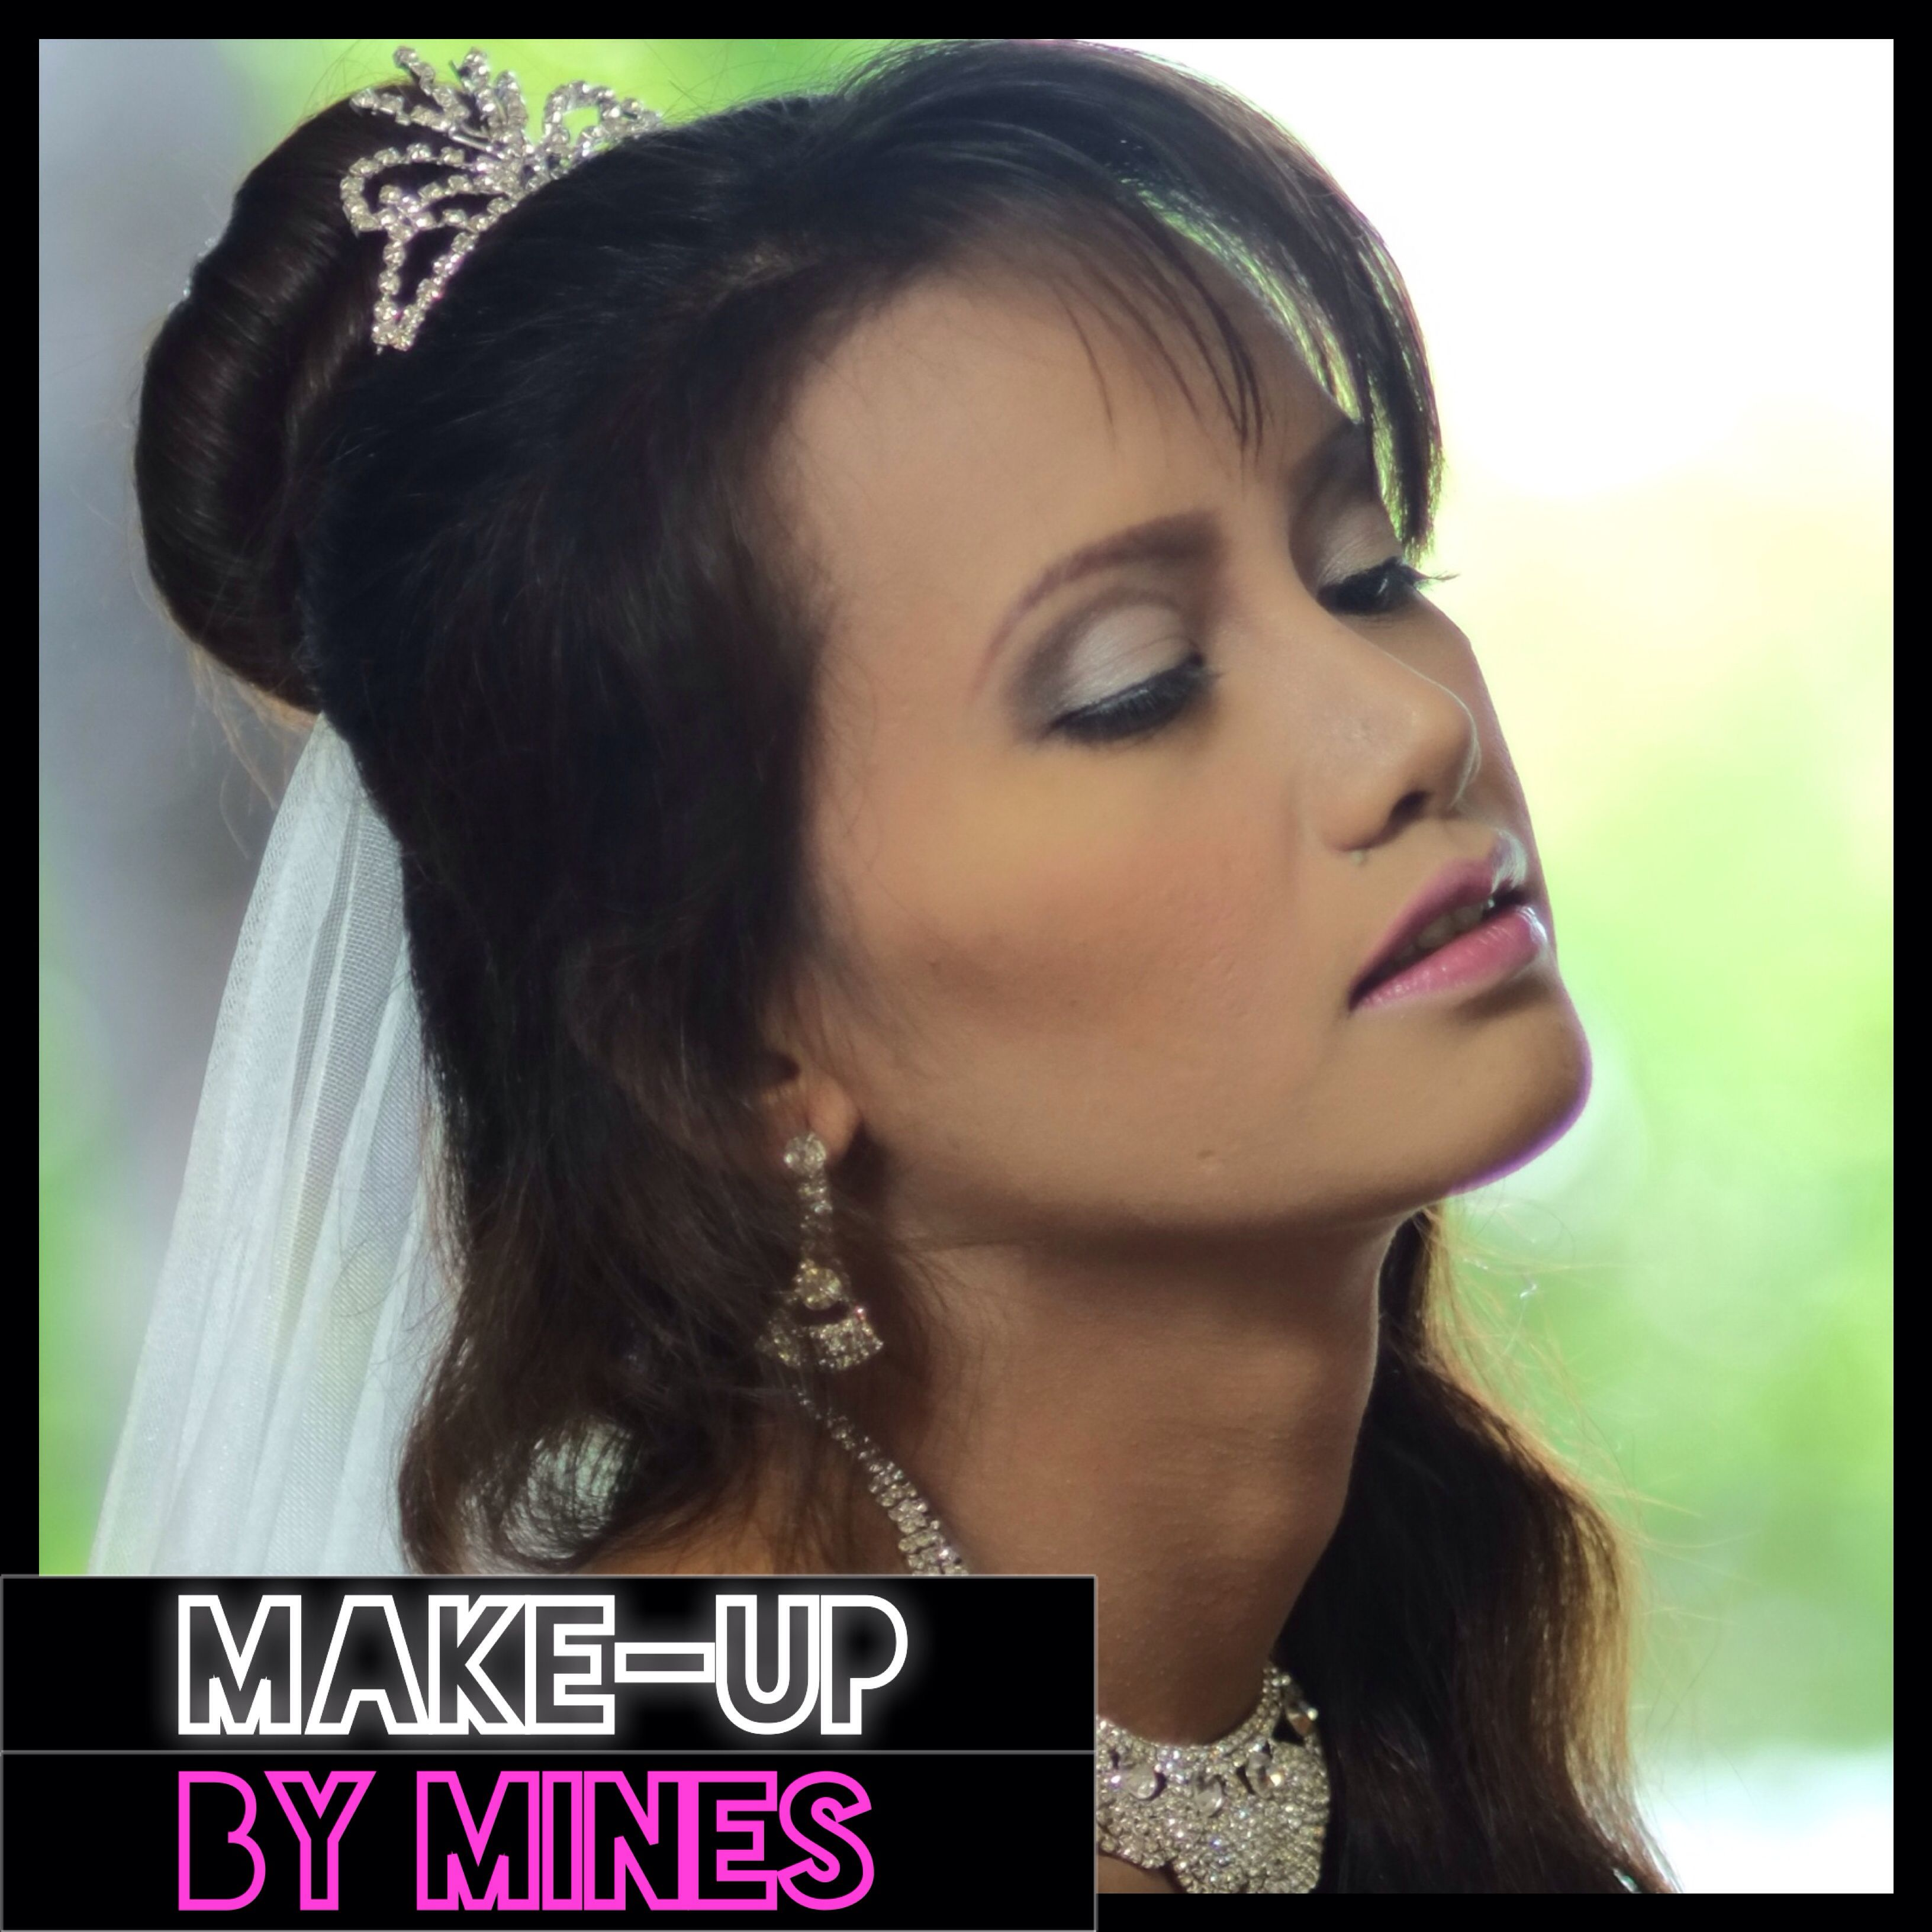 Bridal Makeup  For more of my works, log in to www.facebook.com/makeupbymines or follow me on instagram: makeupbymines #bride #bridalmakeup #makeup #wedding #bridal